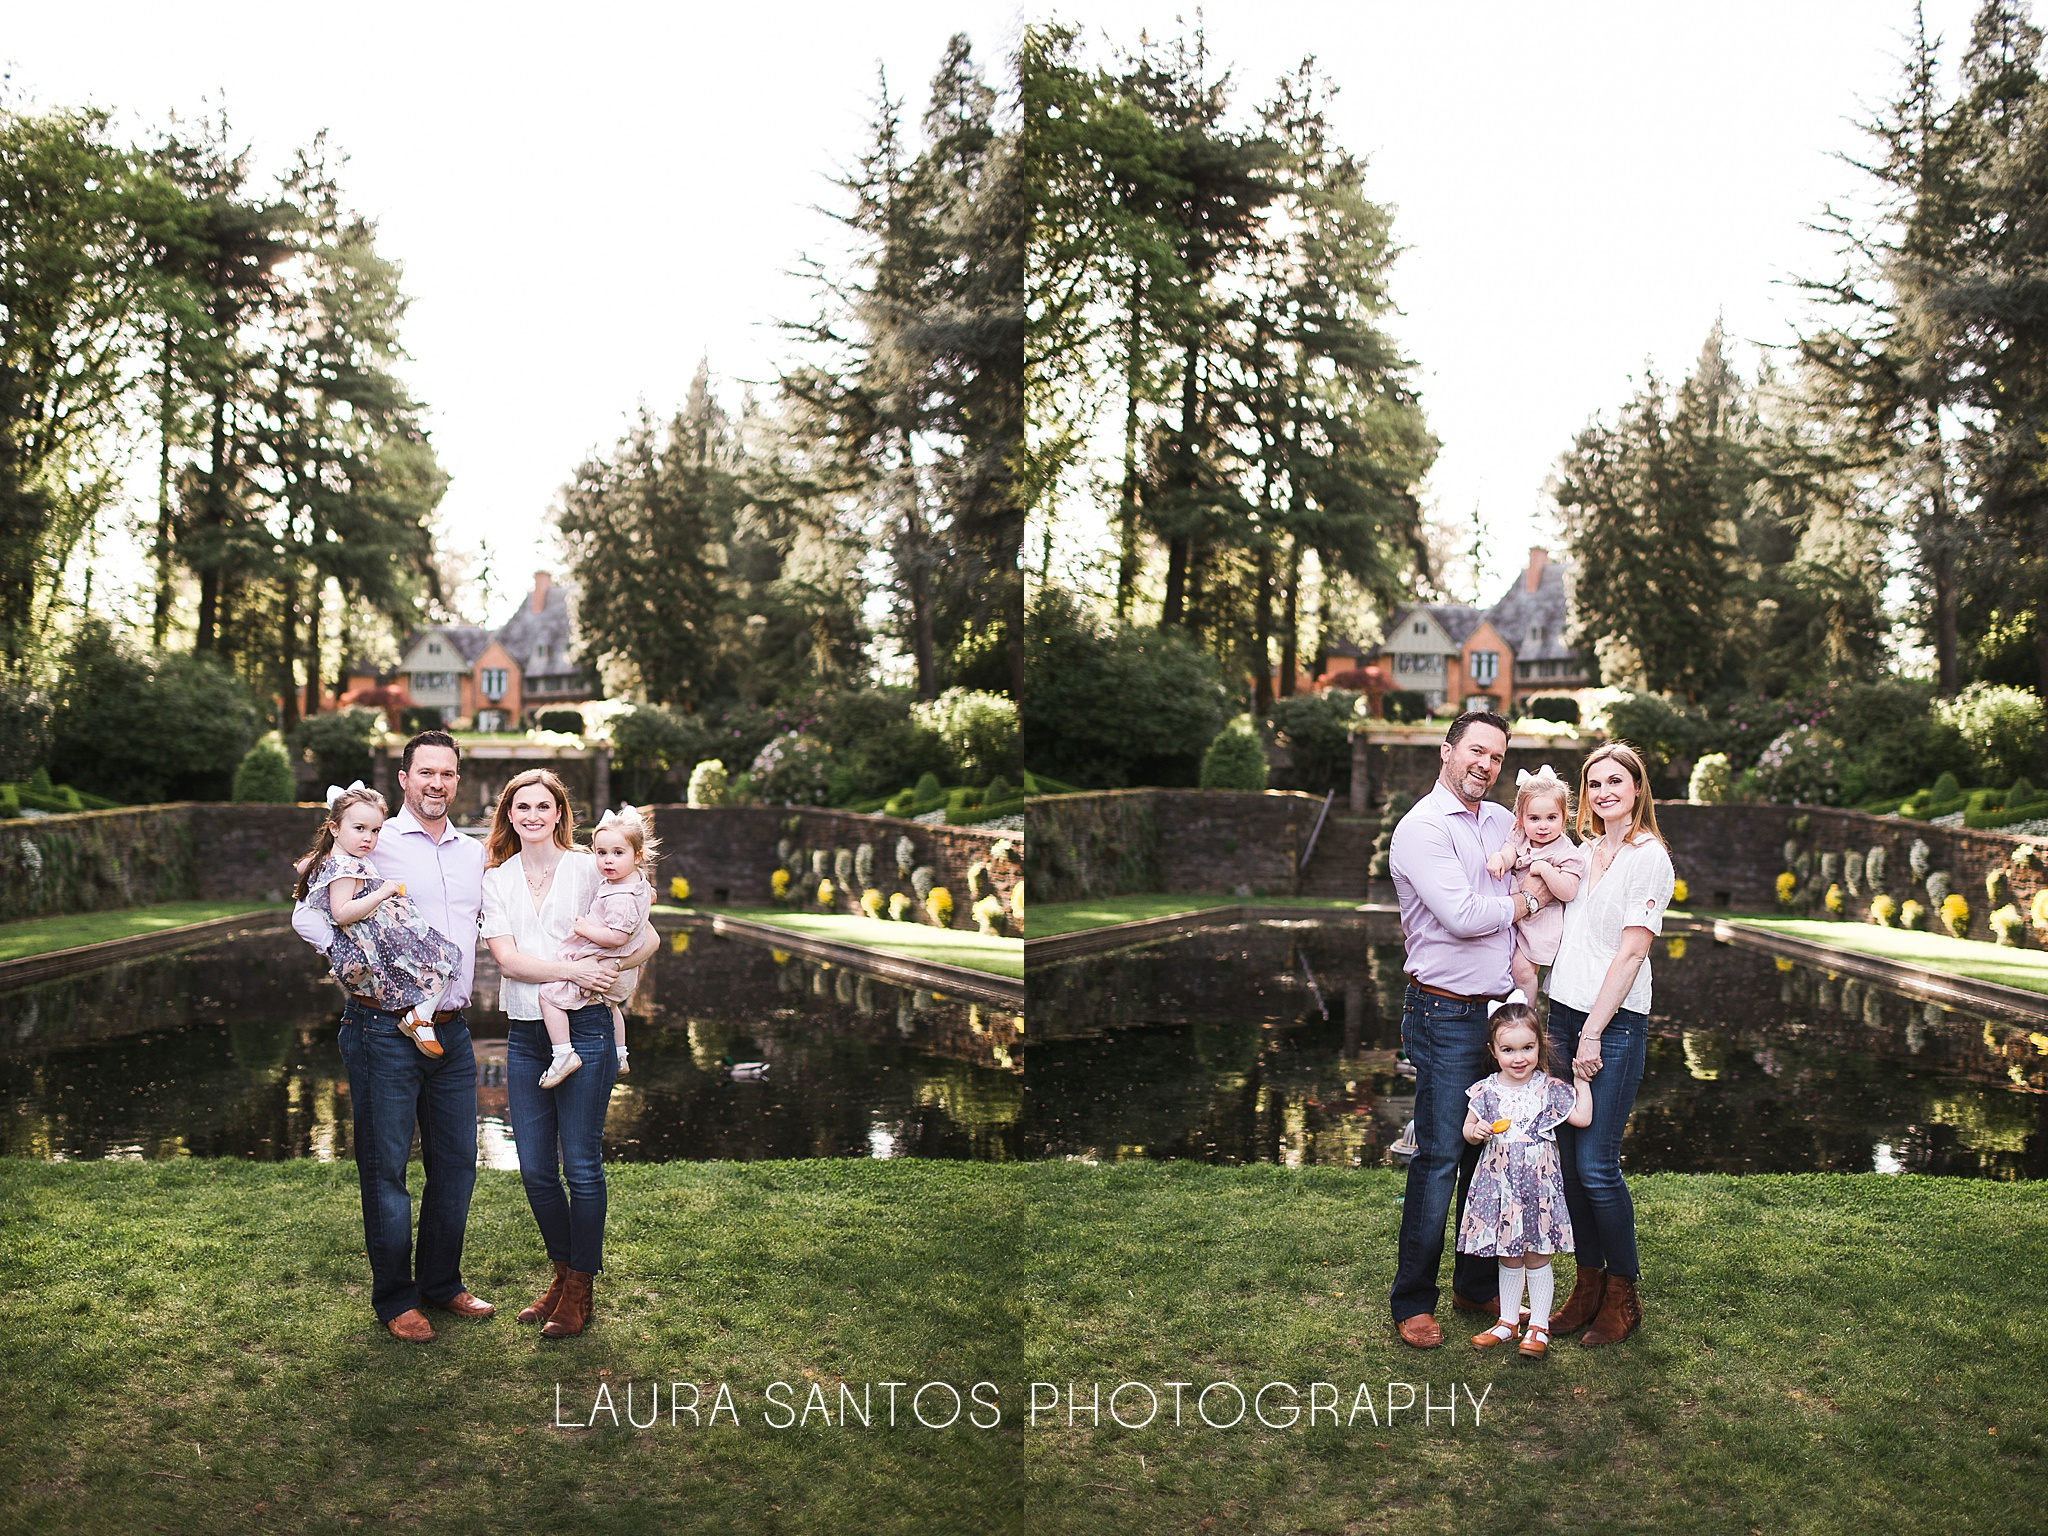 Laura Santos Photography Portland Oregon Family Photographer_0920.jpg